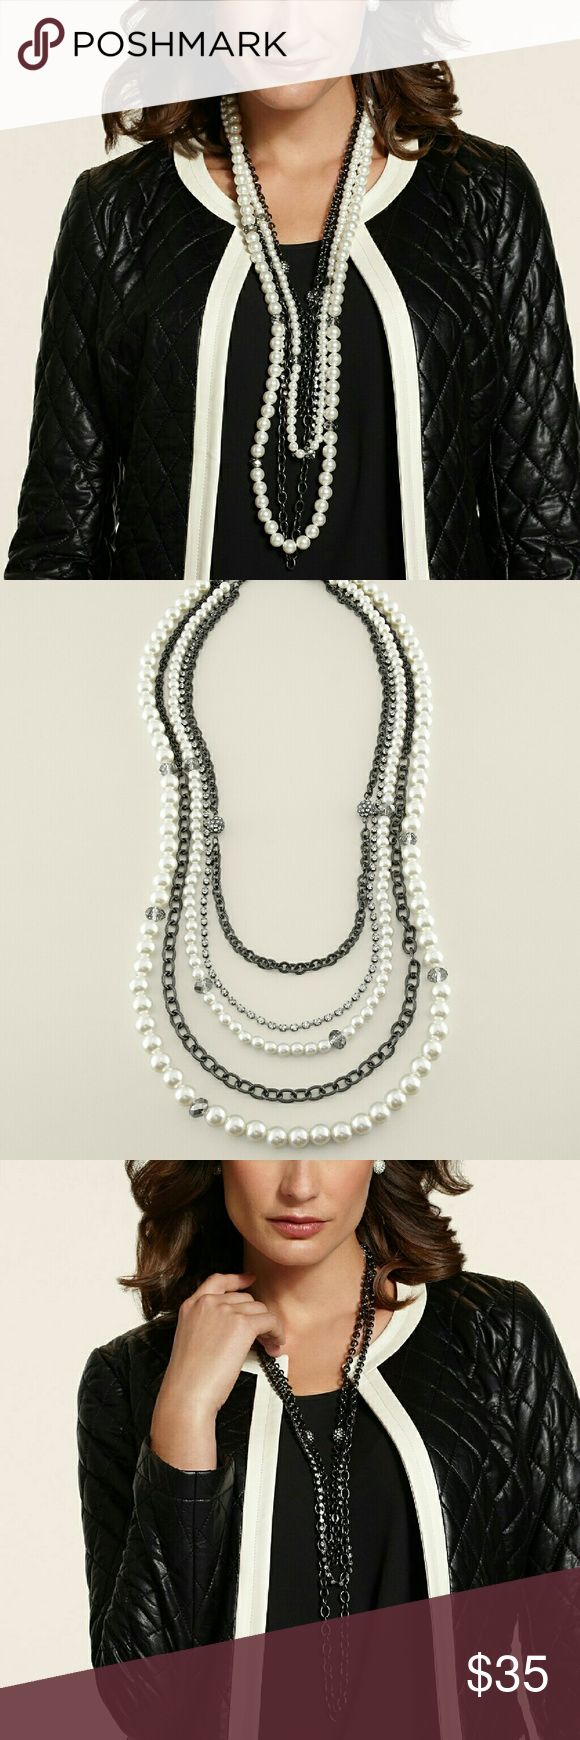 Chicos Olivia Multi Strand Necklace Can be worn two ways as shown in the pictures.   Long statement necklace made with pearls and gunmetal chains.  Simply gorgeous.   Feel free to ask questions and make an offer.?? Be fair though, no low-balling! Chico's Jewelry Necklaces